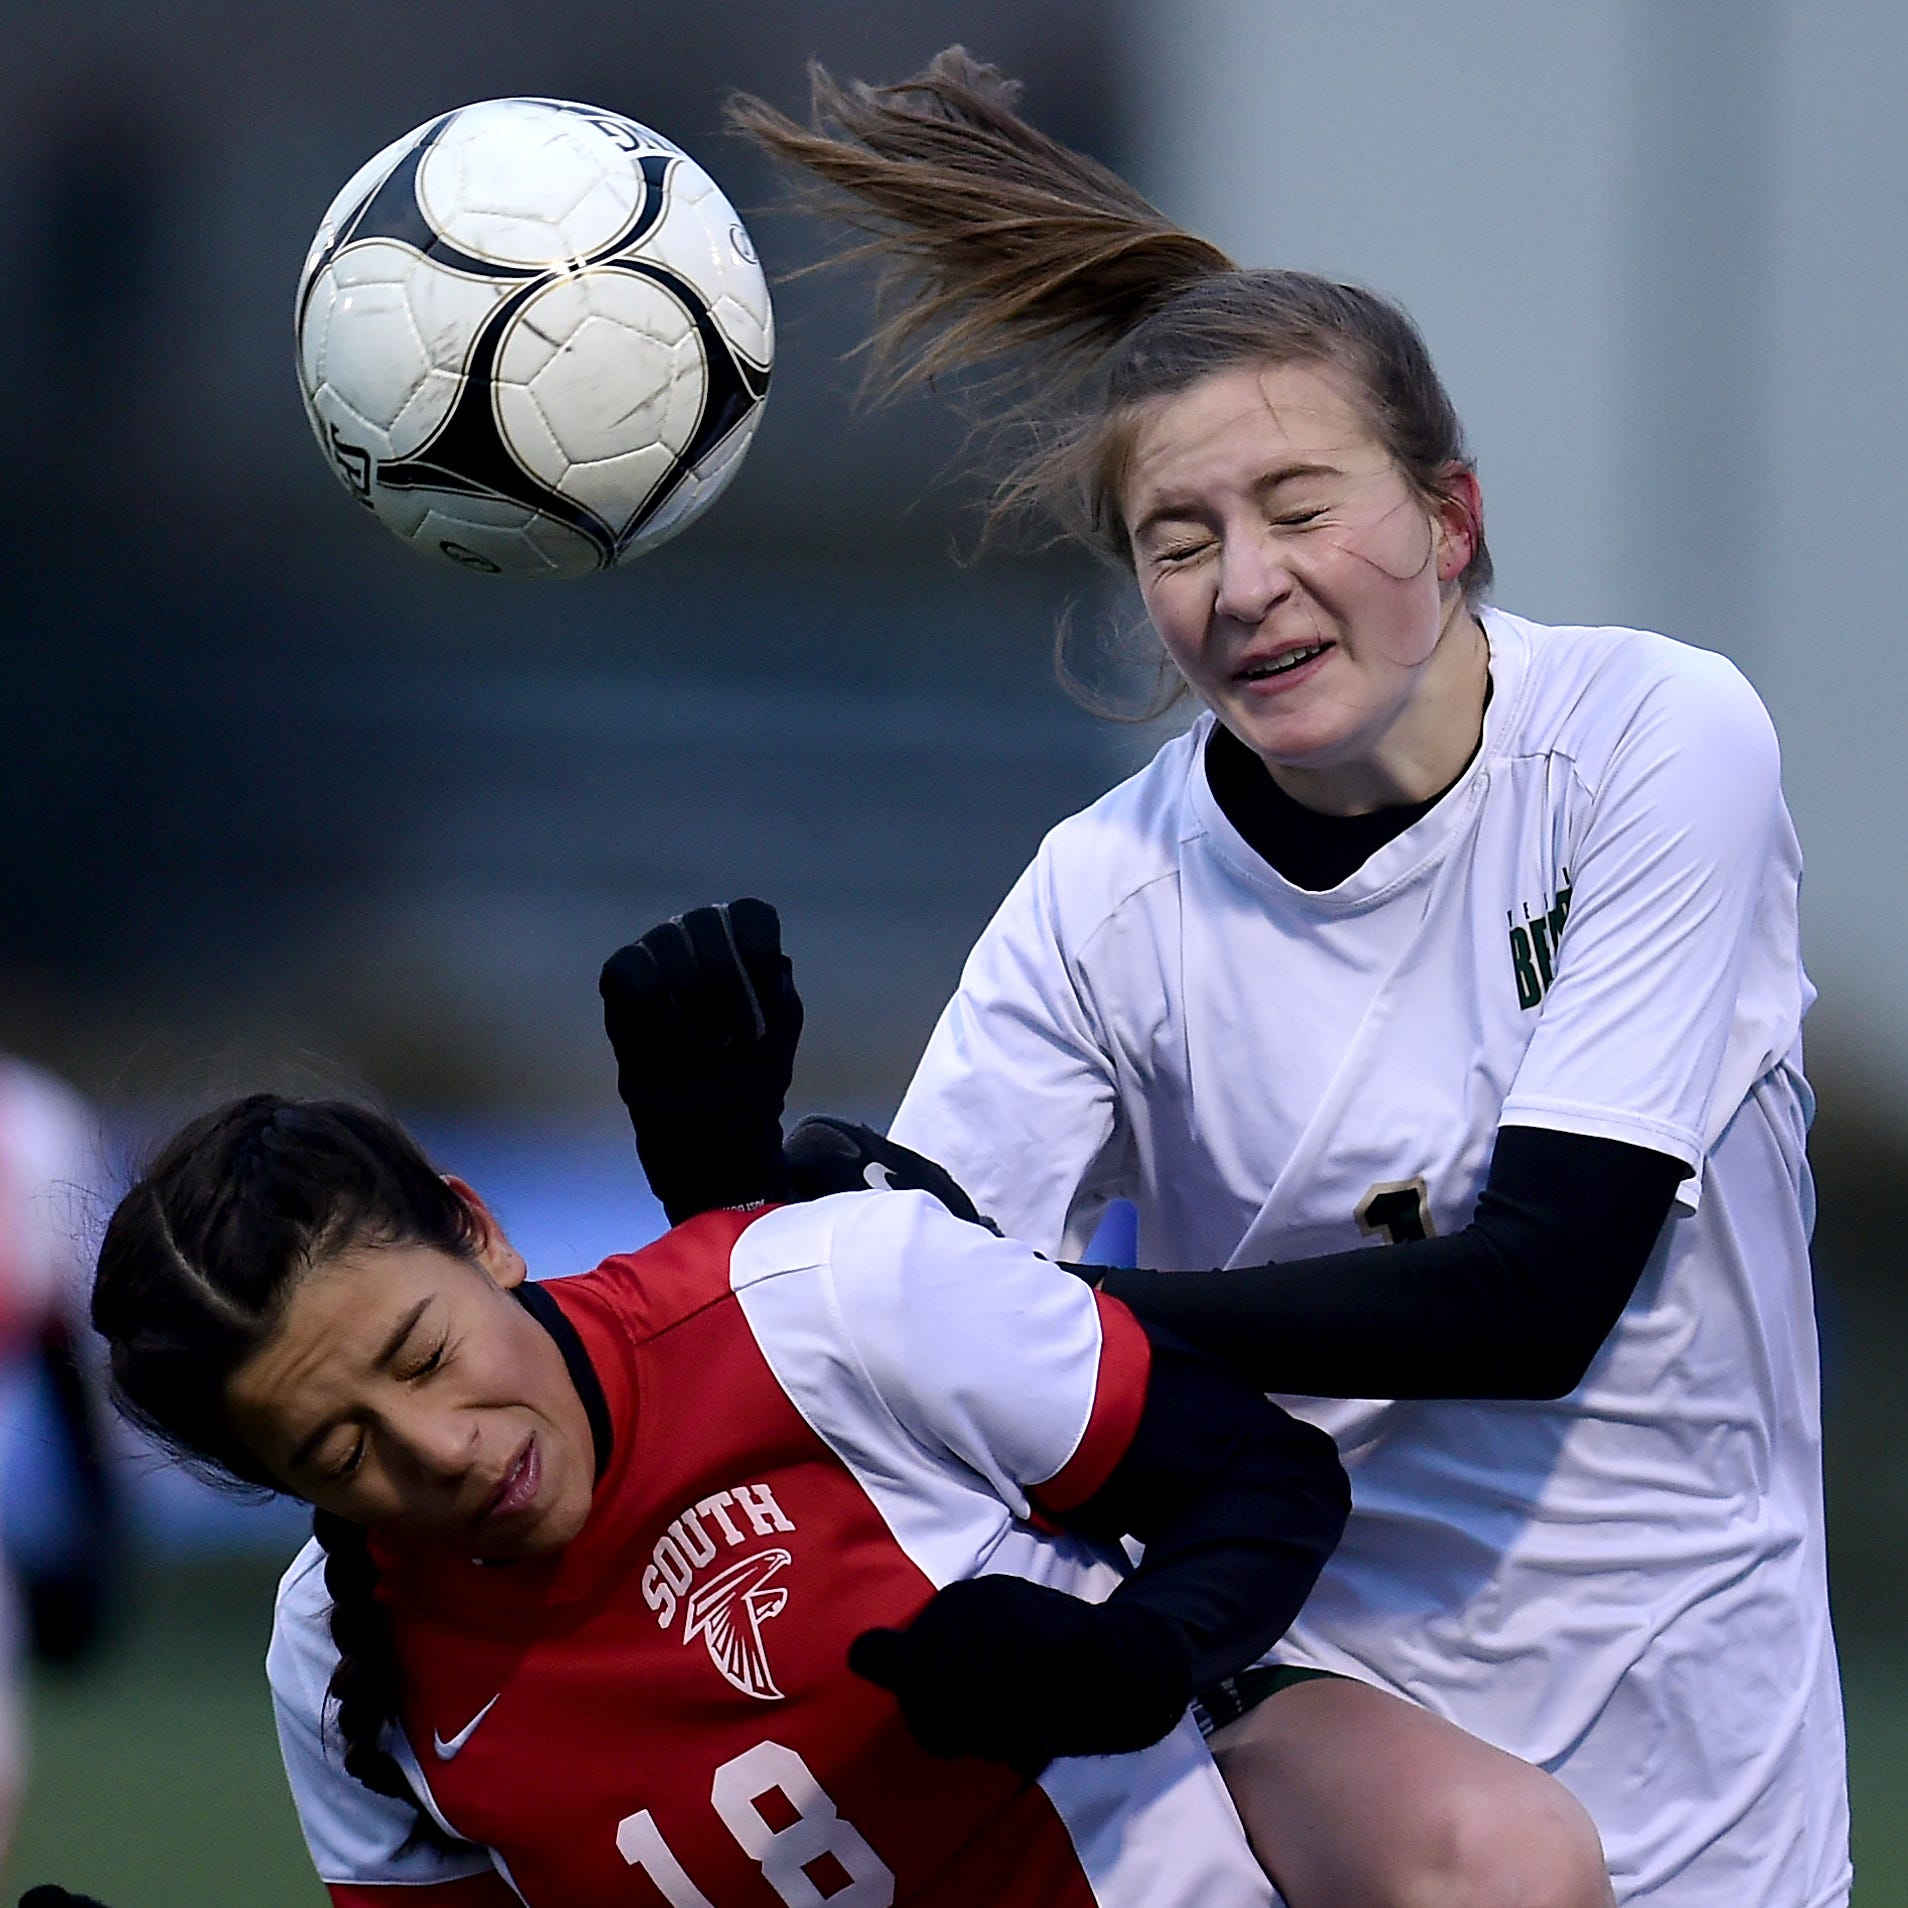 Girls soccer: Bounces go against Vestal in OT loss in state semifinal